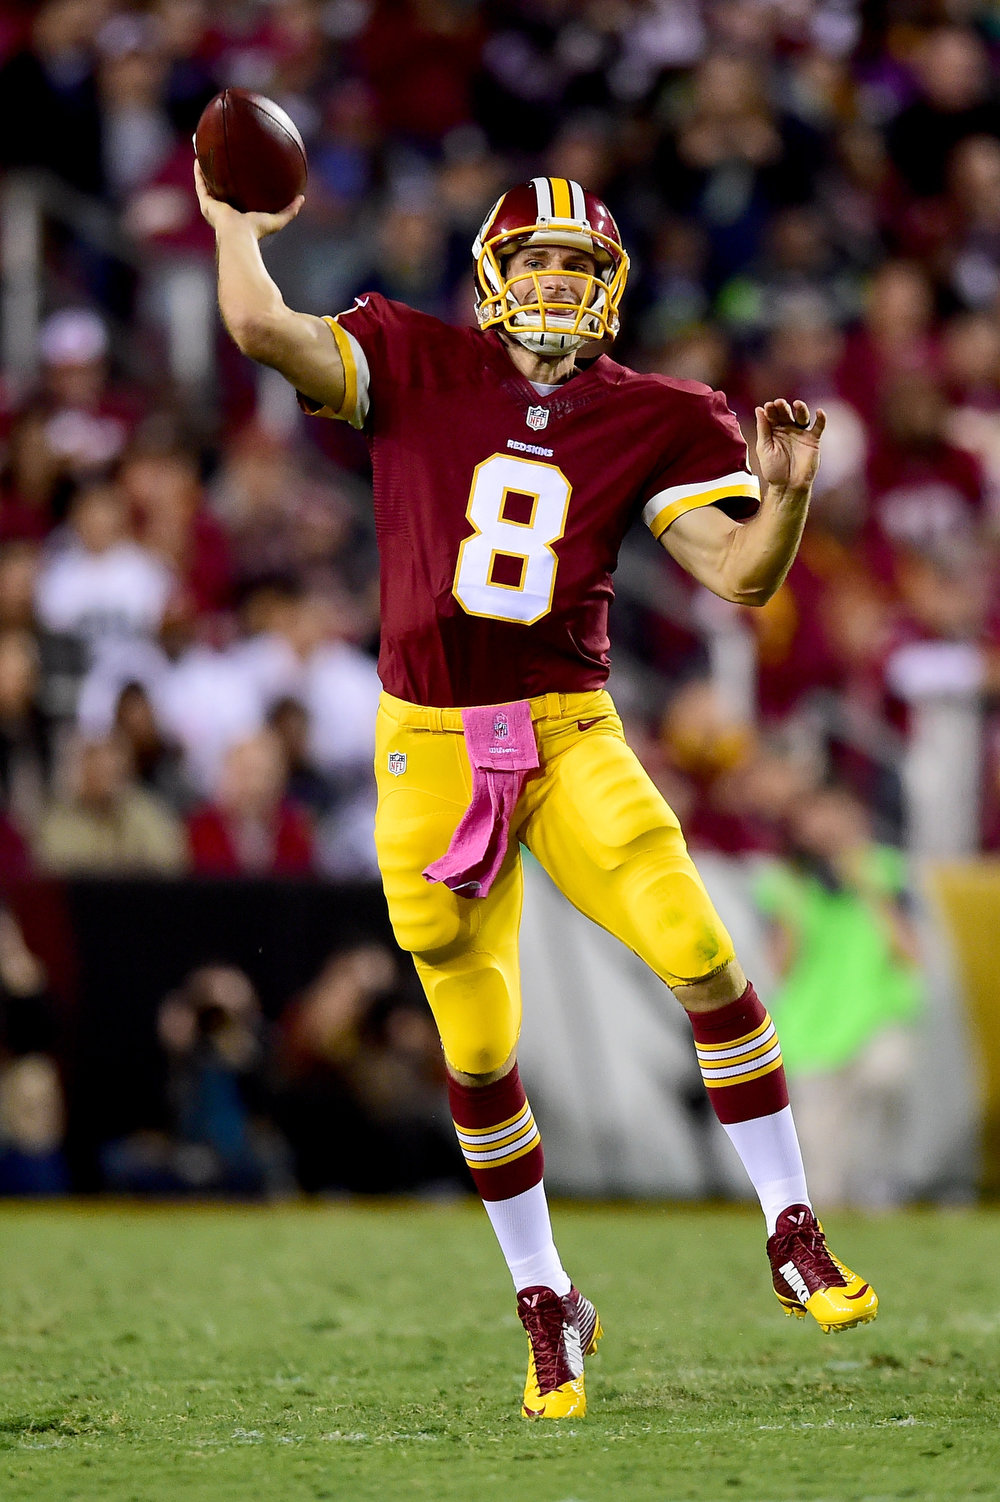 . Quarterback Kirk Cousins #8 of the Washington Redskins throws a second quarter touchdown pass against the Seattle Seahawks at FedExField on October 6, 2014 in Landover, Maryland.  (Photo by Patrick Smith/Getty Images)